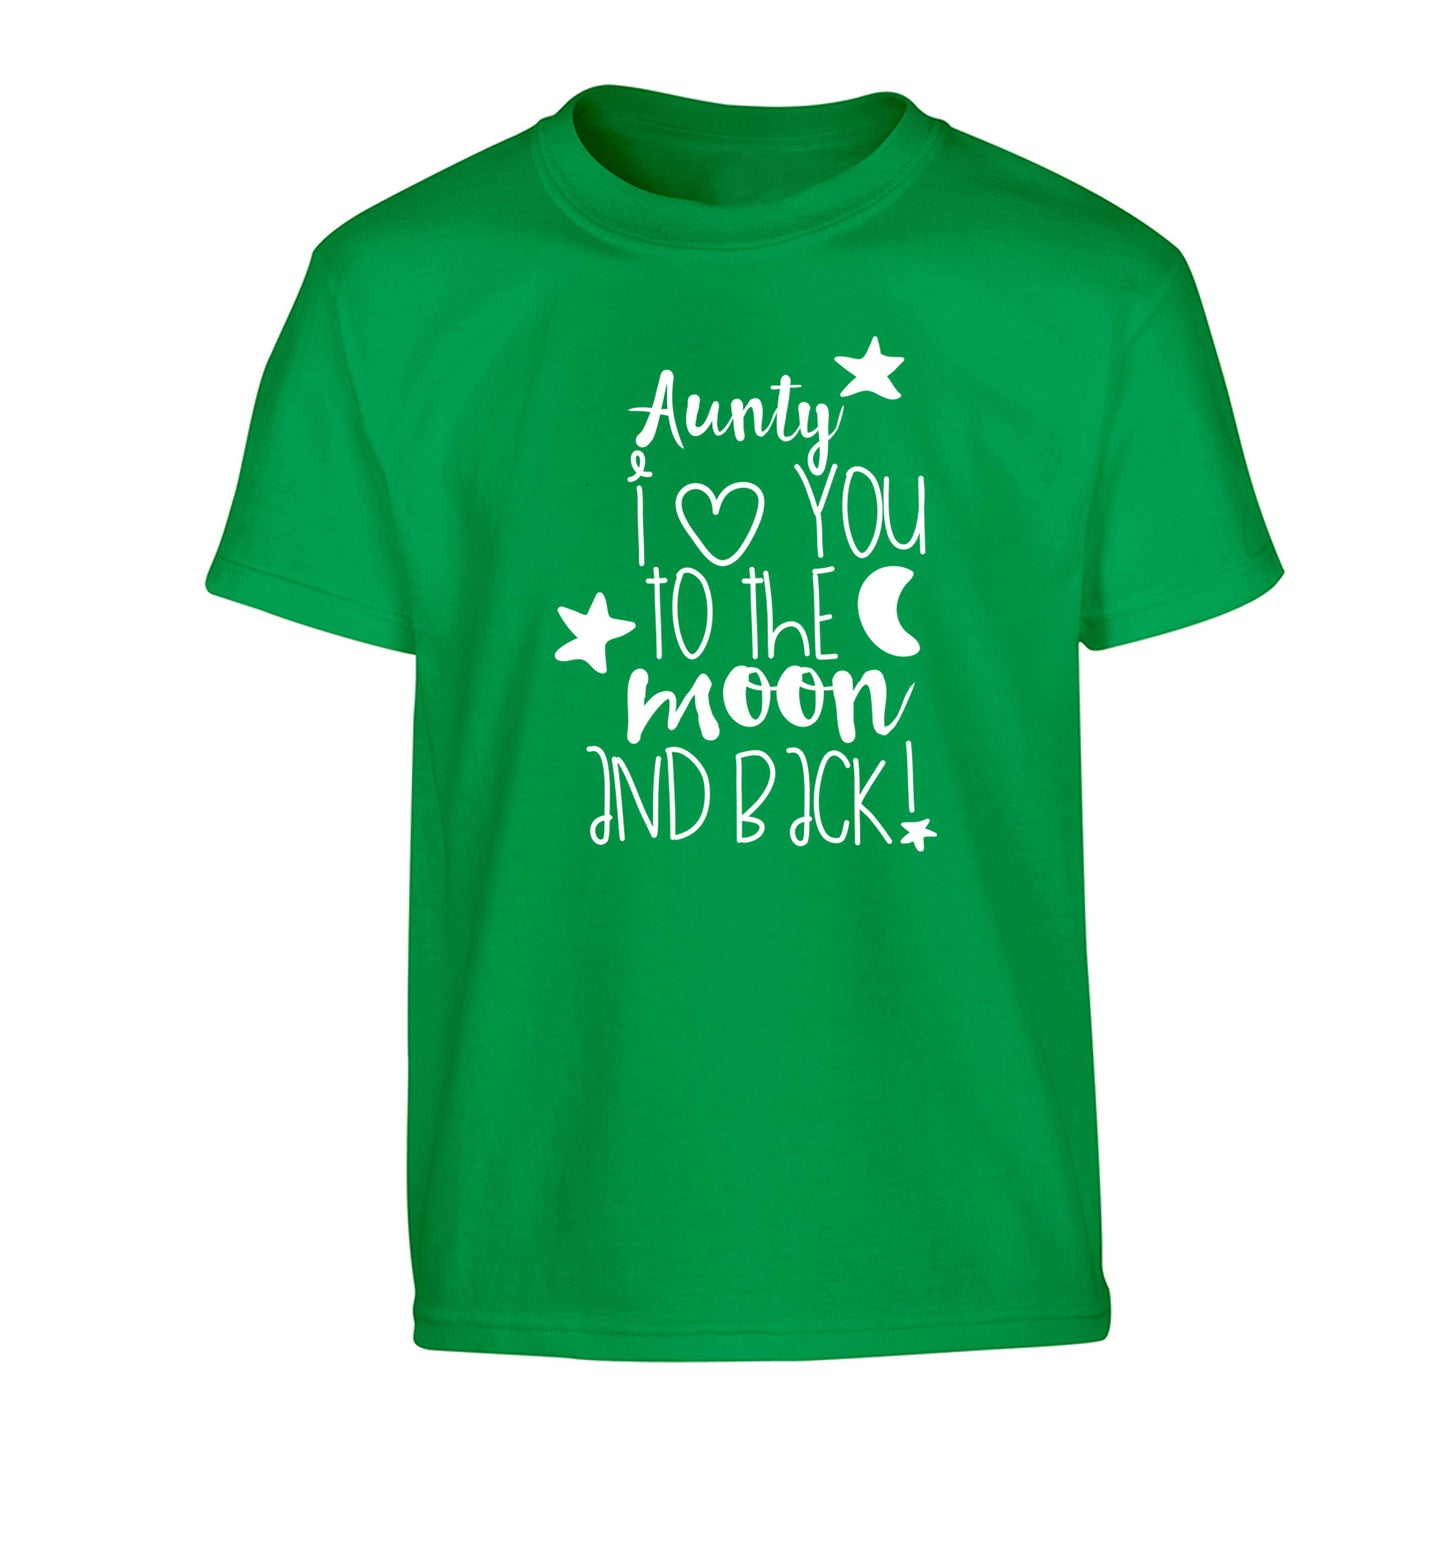 Aunty I love you to the moon and back Children's green Tshirt 12-14 Years